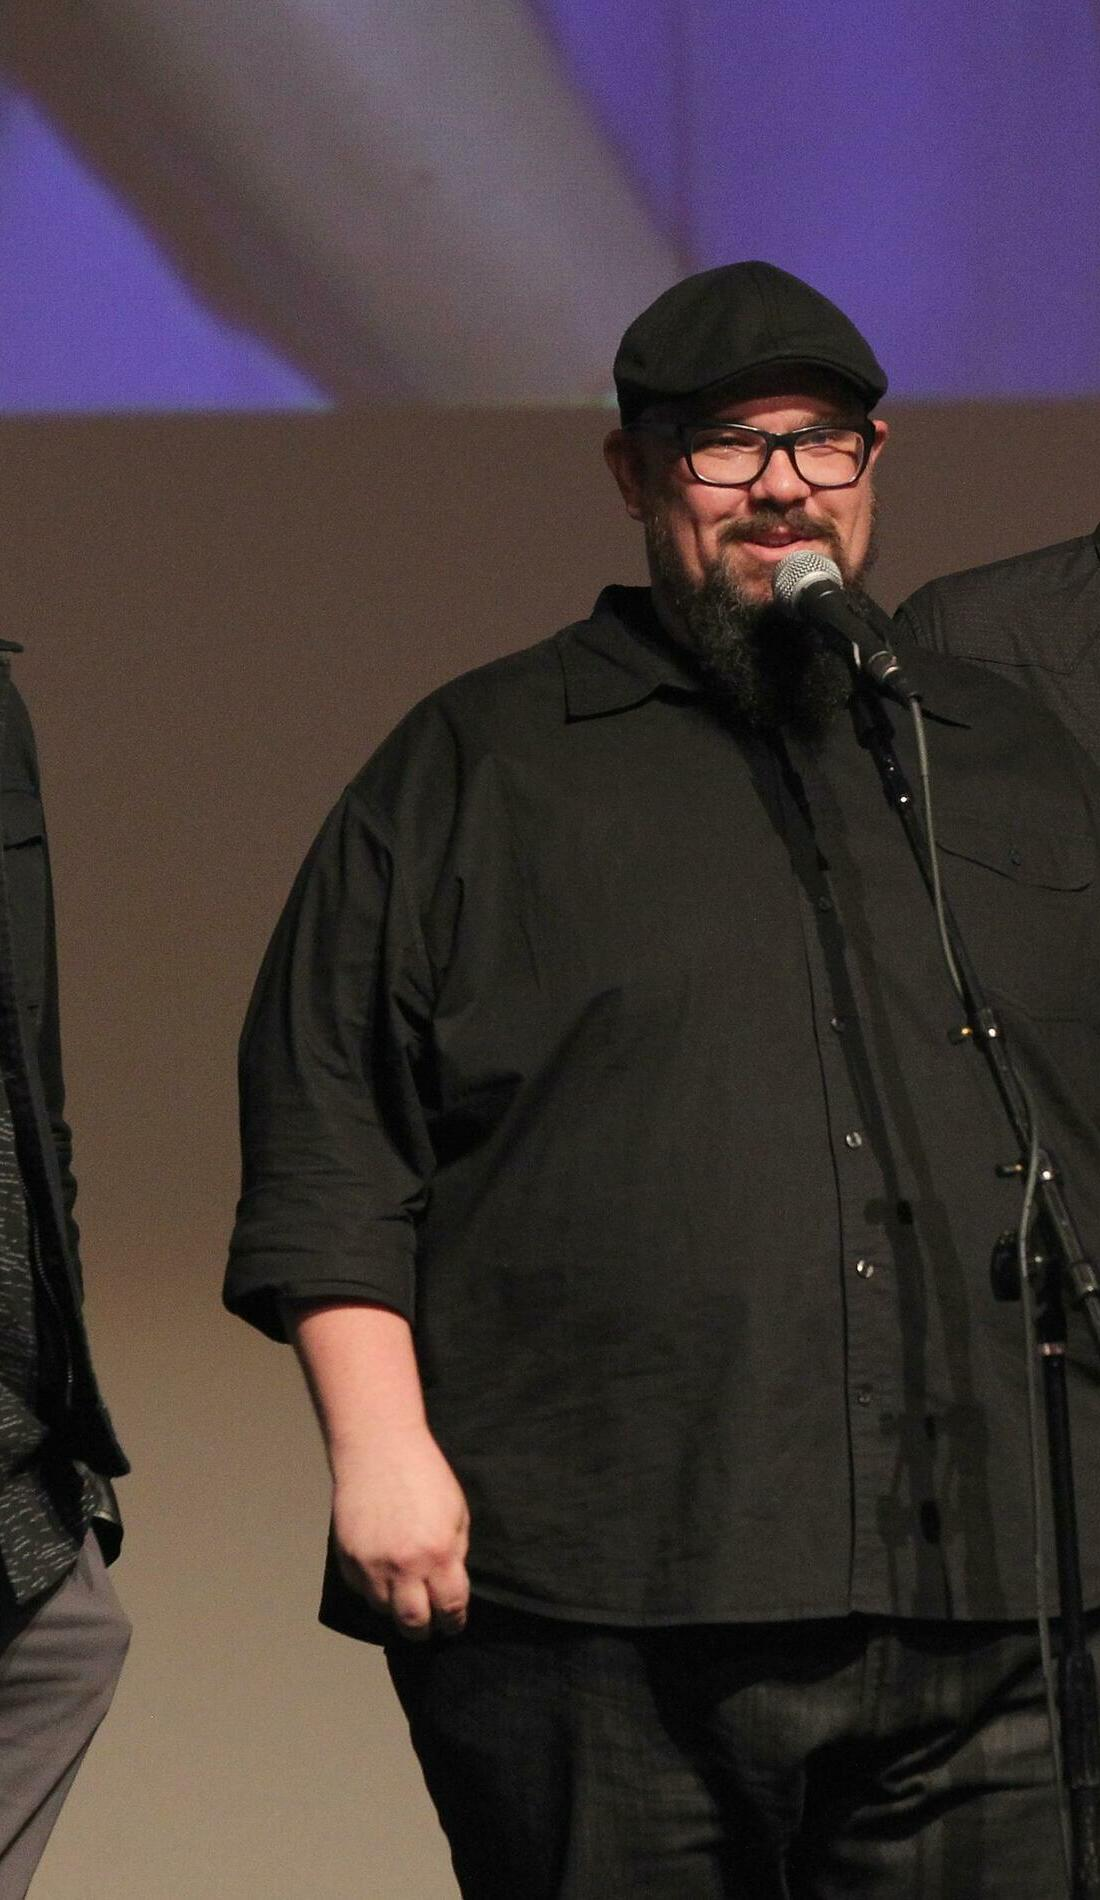 A Big Daddy Weave live event